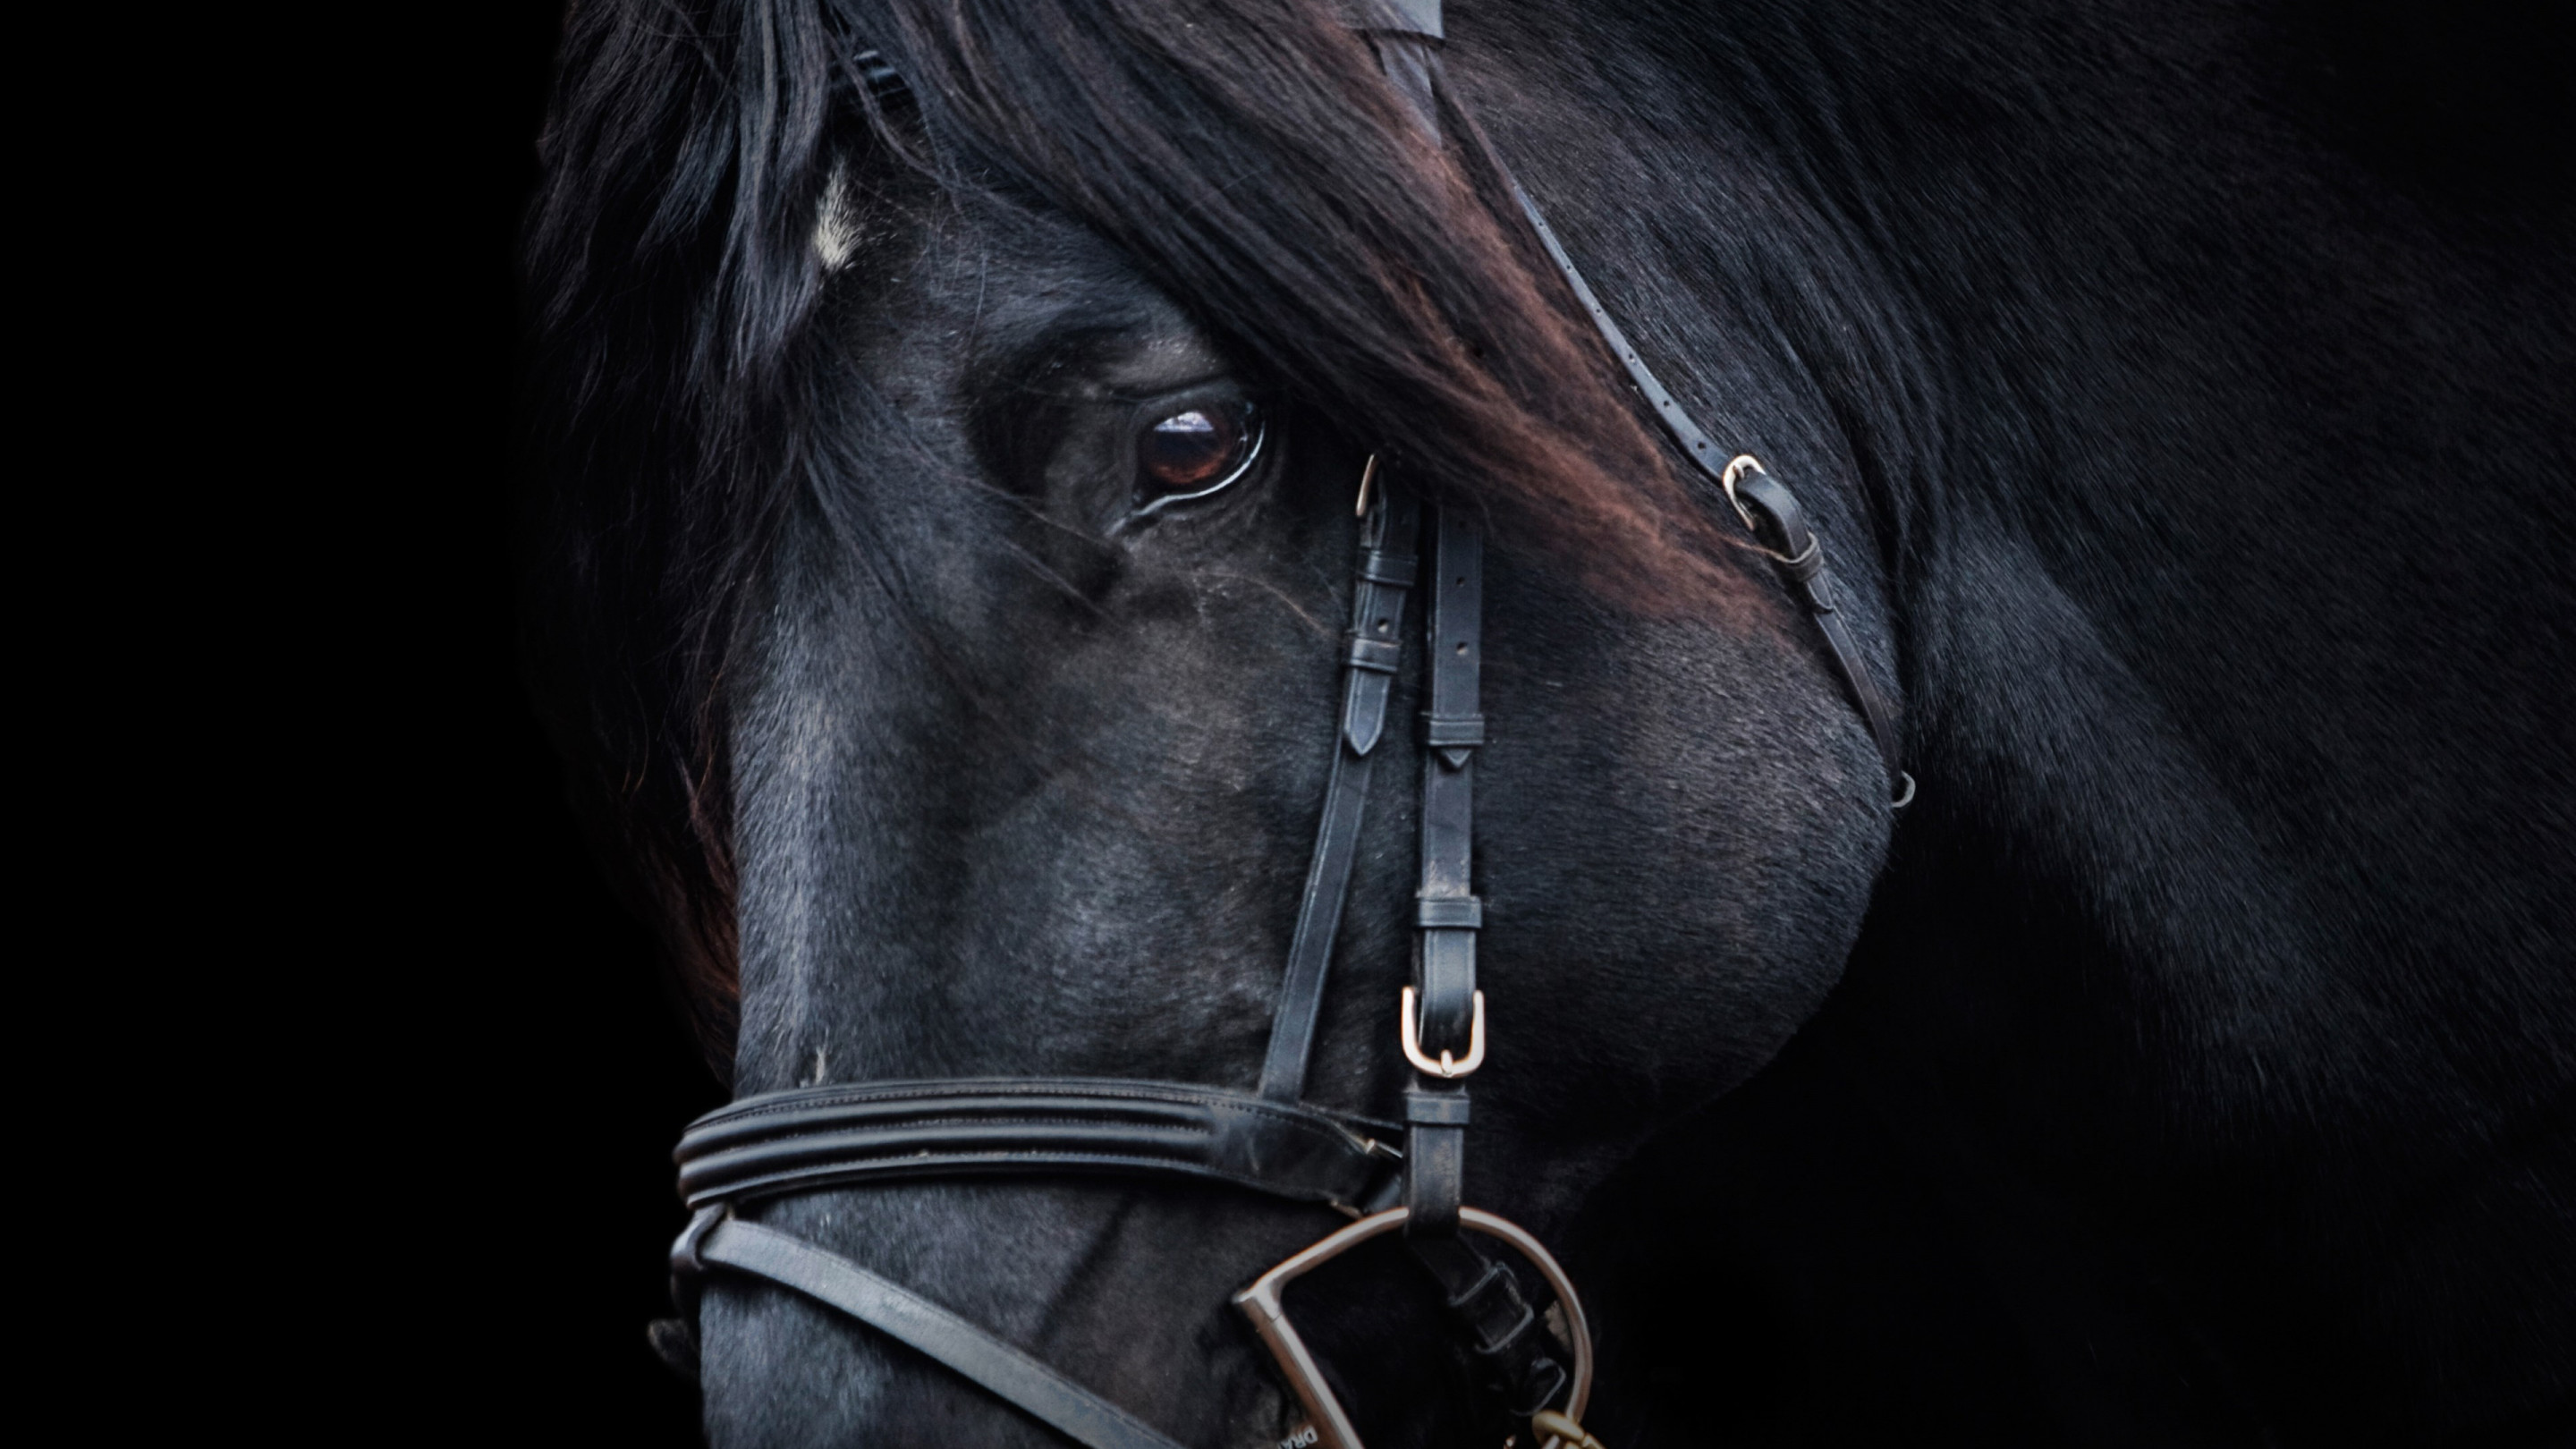 Black horse wallpaper 2880x1620